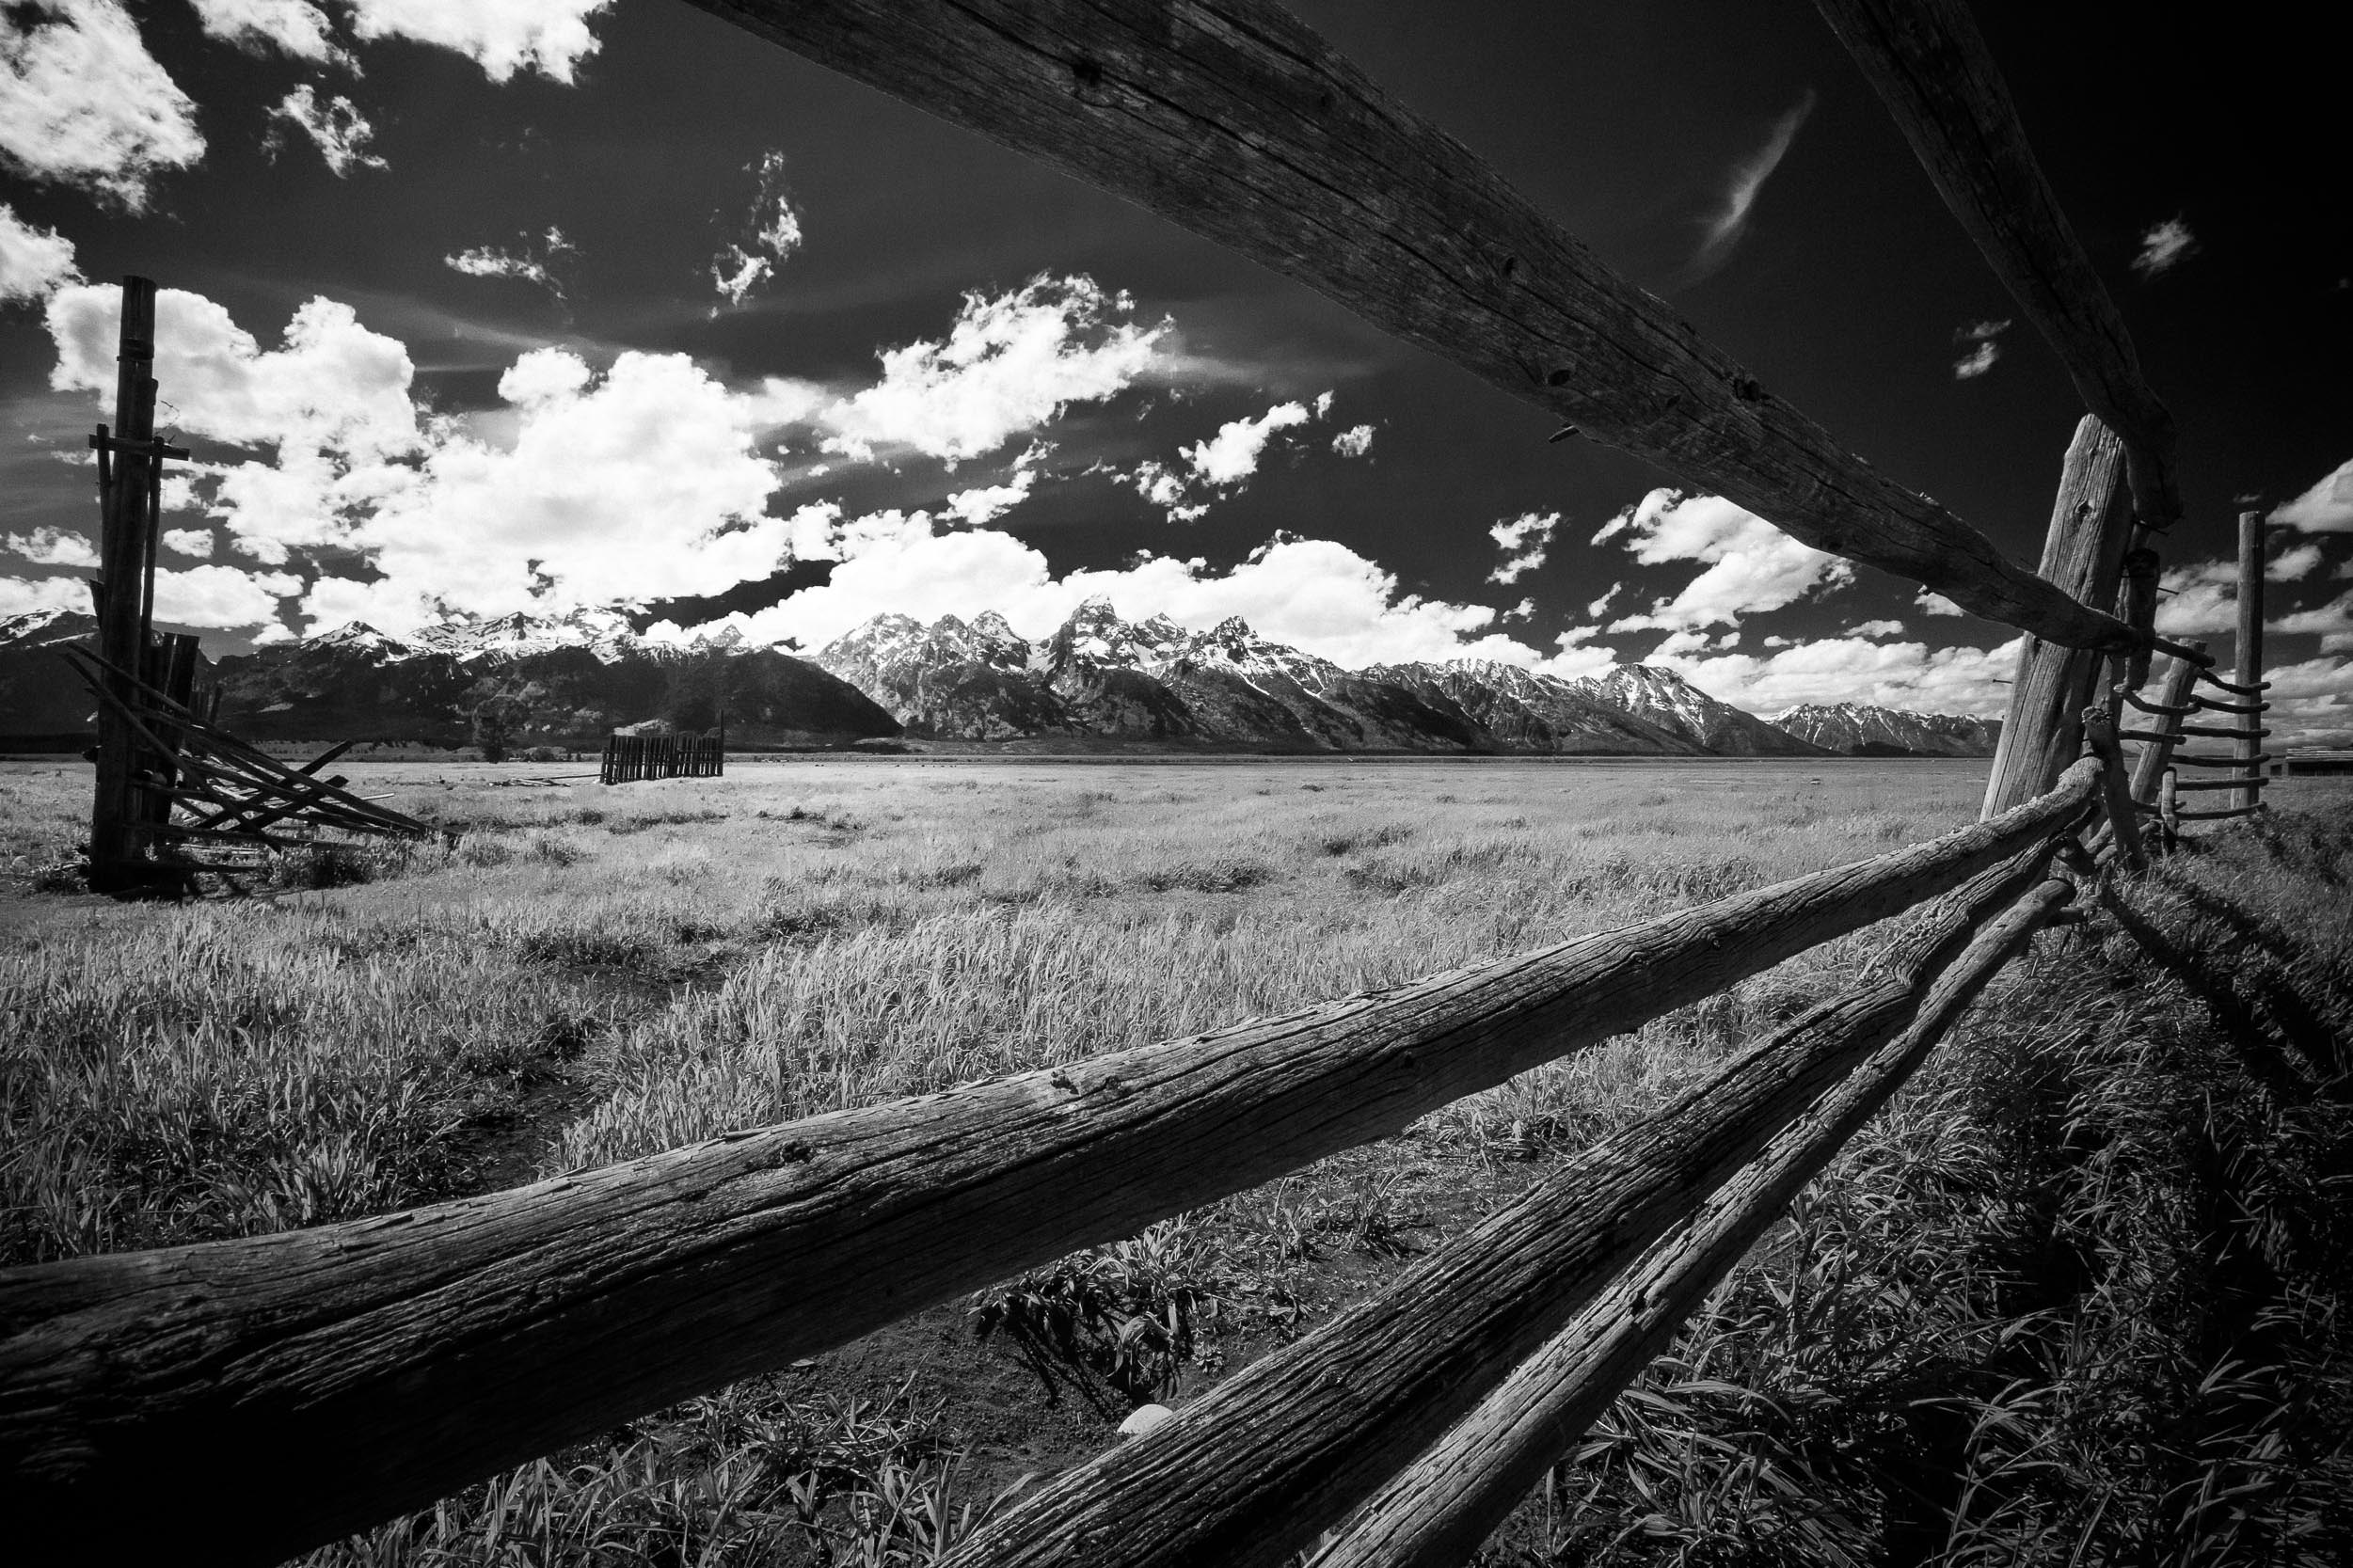 The old fence corral of the Mormon Row buildings in Grand Teton National Park